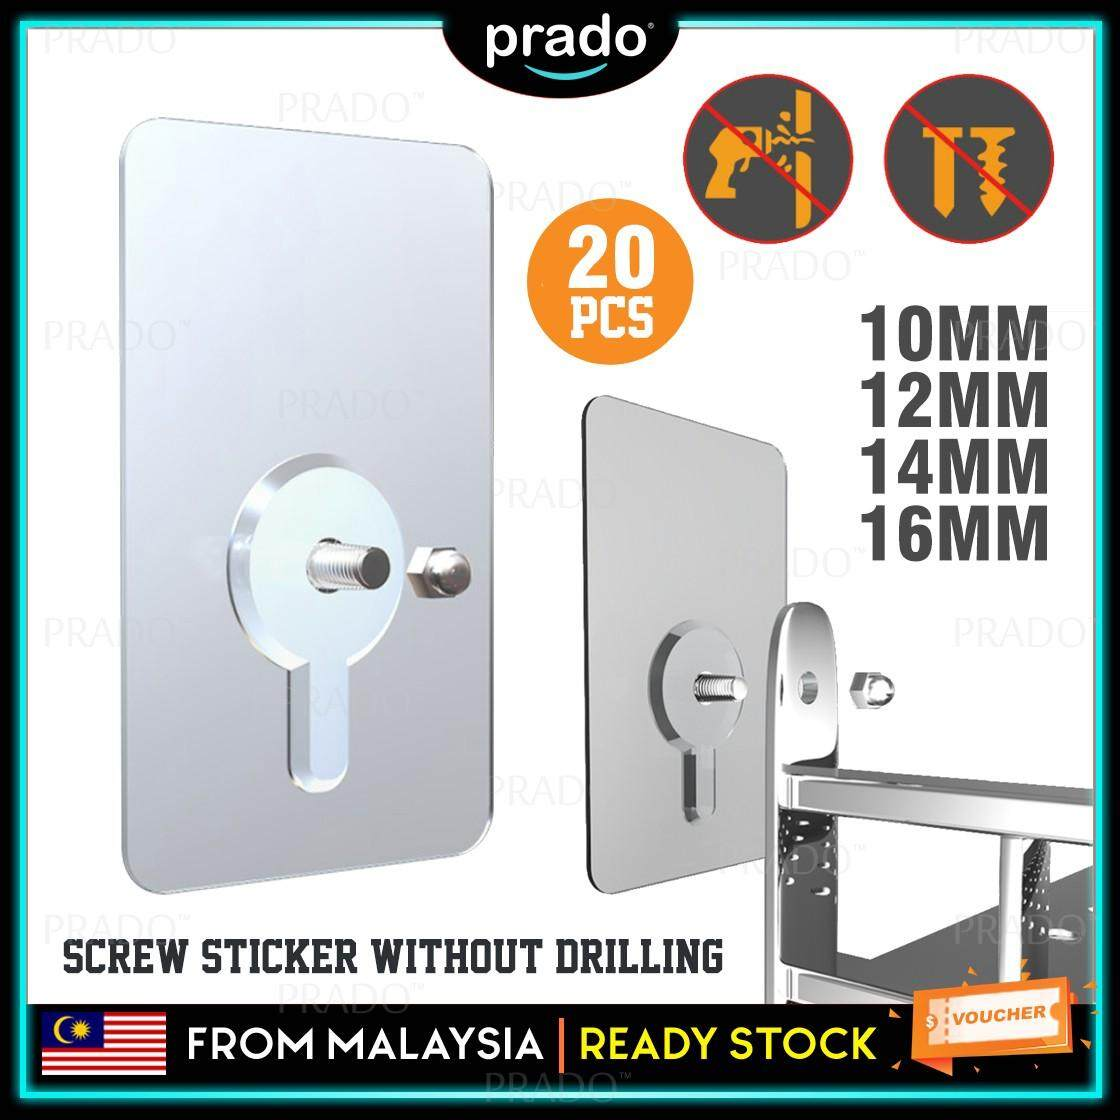 PRADO Malaysia 20pcs Heavy Duty No Drill Screw Stick-On Punch Nail Screw Super Sticky Strong Home Living Kitchen Adhesive Magic Wall Hook Hanger